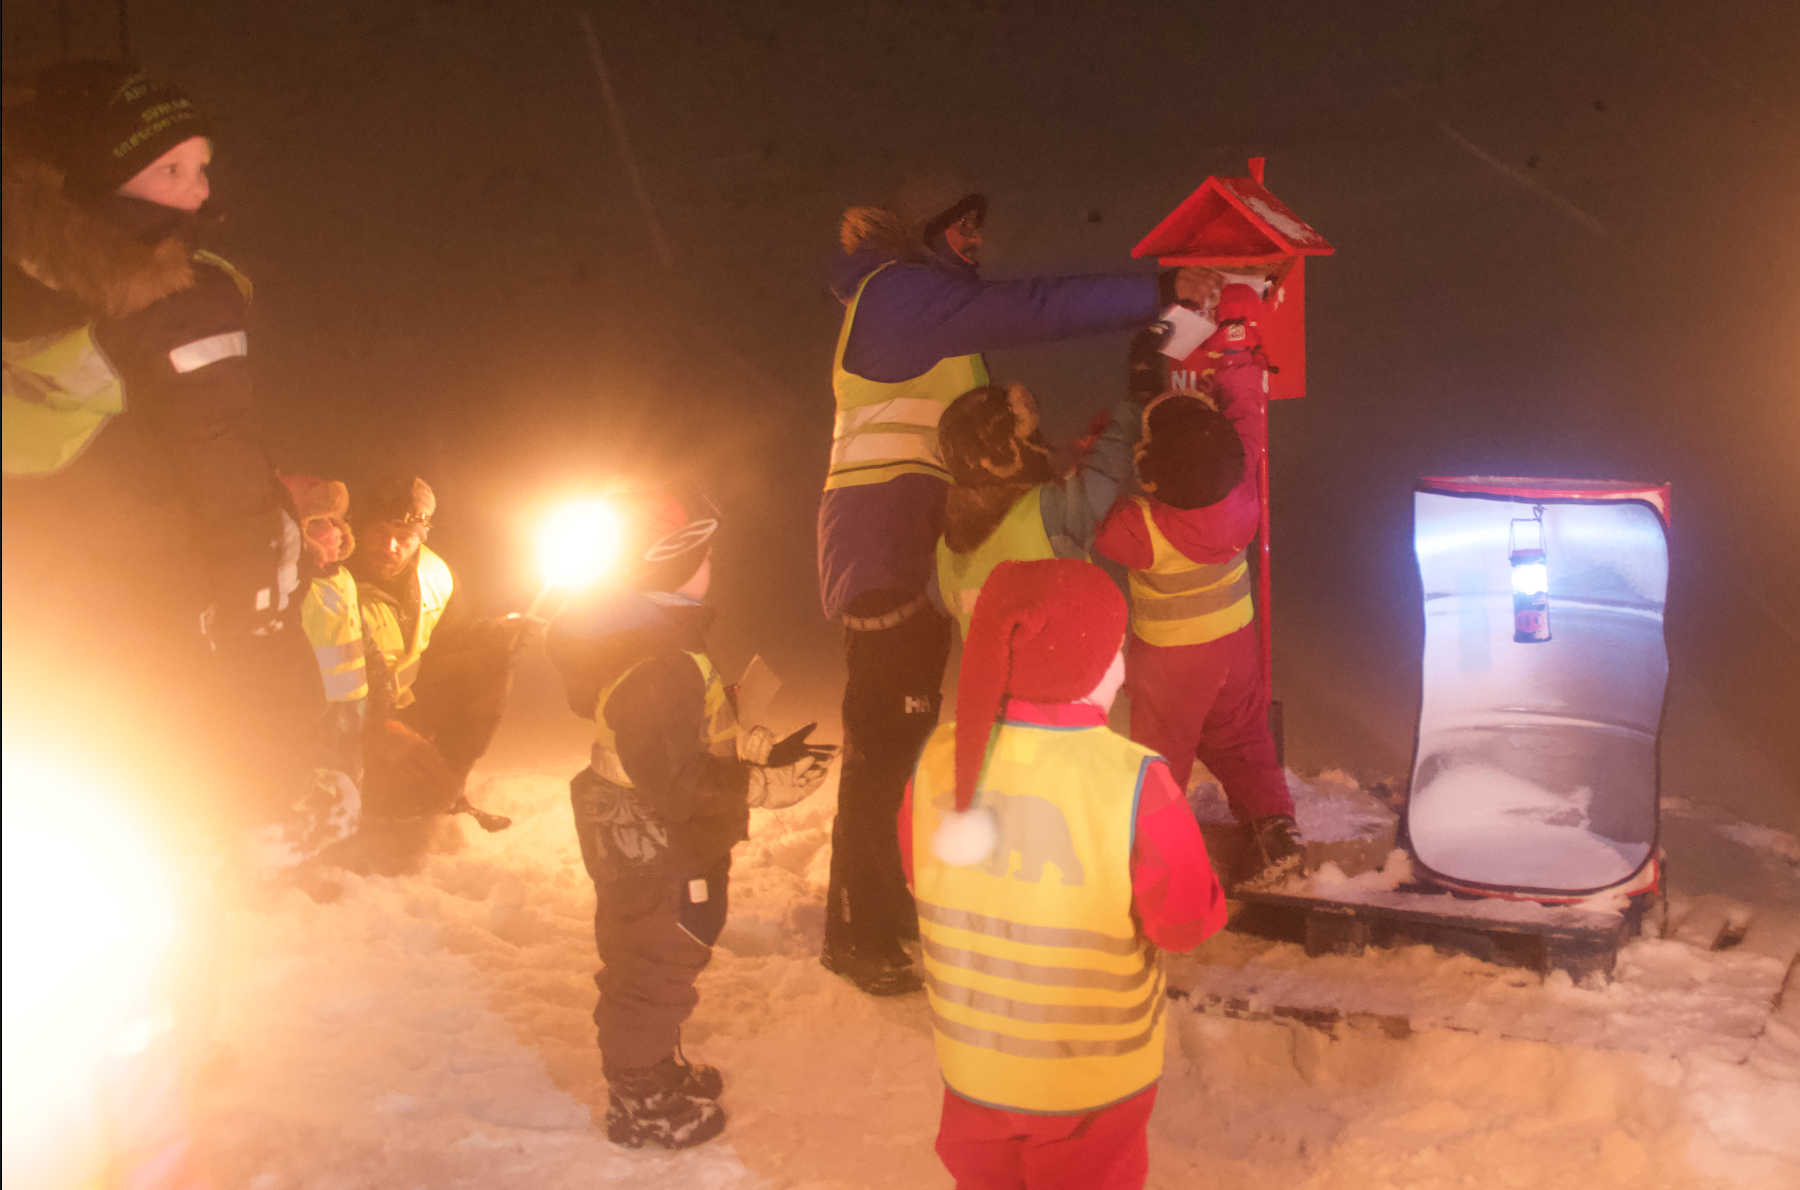 BRIGHTER, BUT BIZARRE, HOLIDAY HIGHLIGHTS: Advent in Longyearbyen starts w/ letters, lights, lyrics – and looney laws